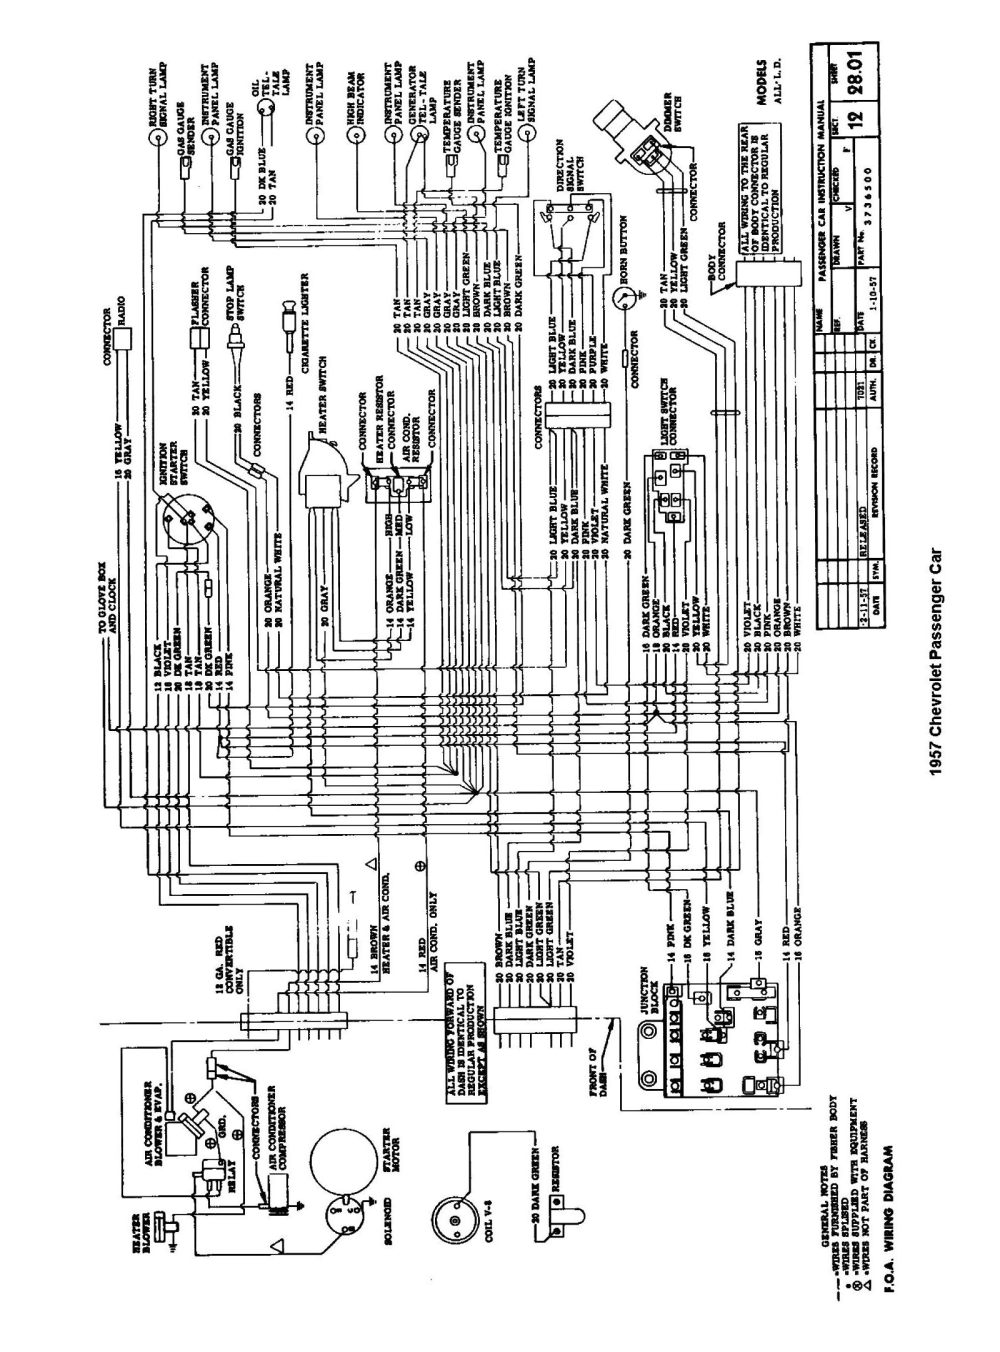 medium resolution of 1957 chevy truck wiring harness wiring diagram 1957 chevy truck wiring diagram 1957 chevy truck wiring